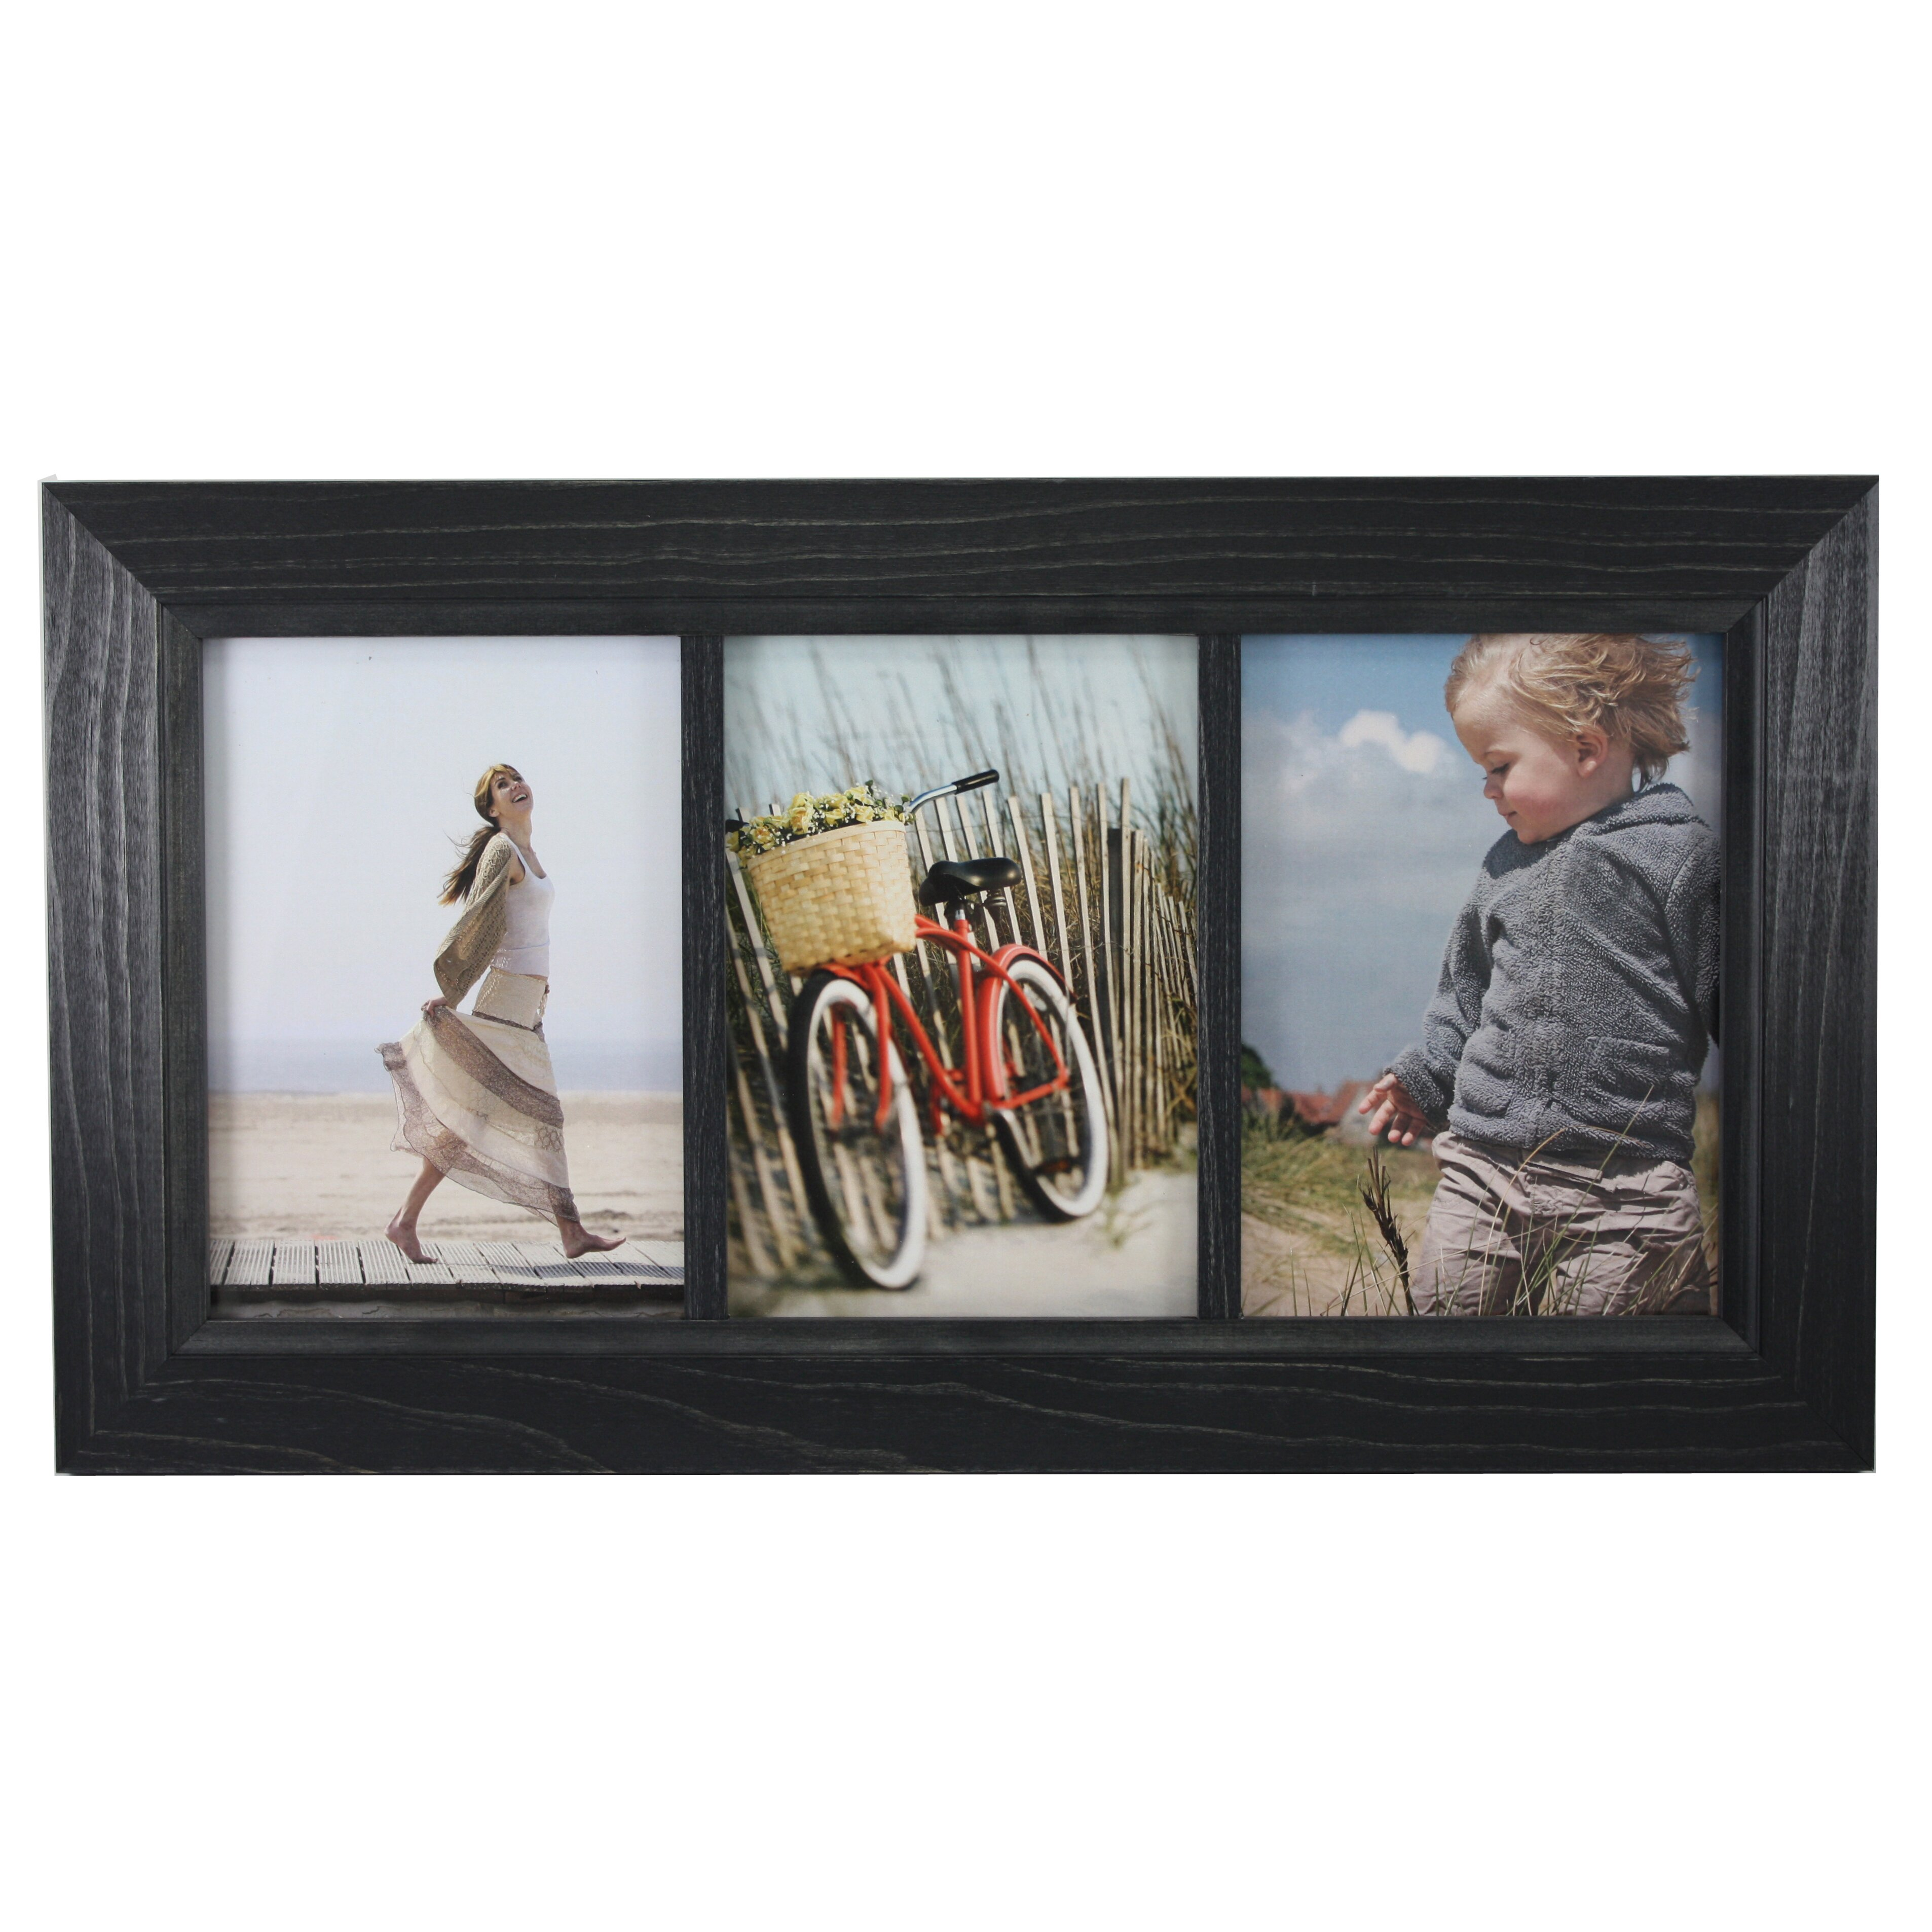 Https Www Wayfair Com Blanford Classic Picture Frame F54452157t Fhk1822 Html